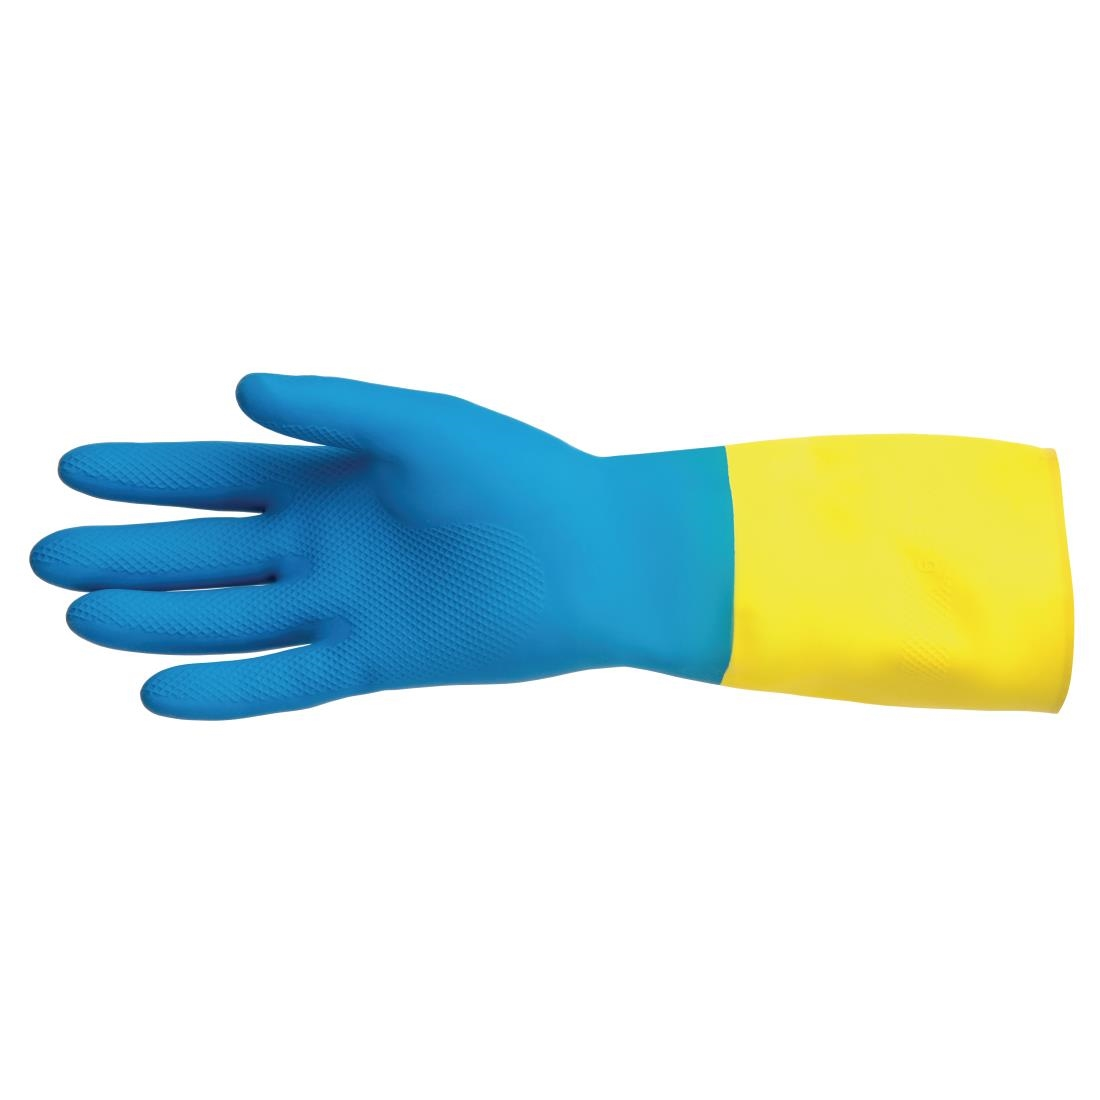 Image of MAPA Alto 405 Liquid-Proof Heavy-Duty Janitorial Gloves Blue and Yellow Extra Large